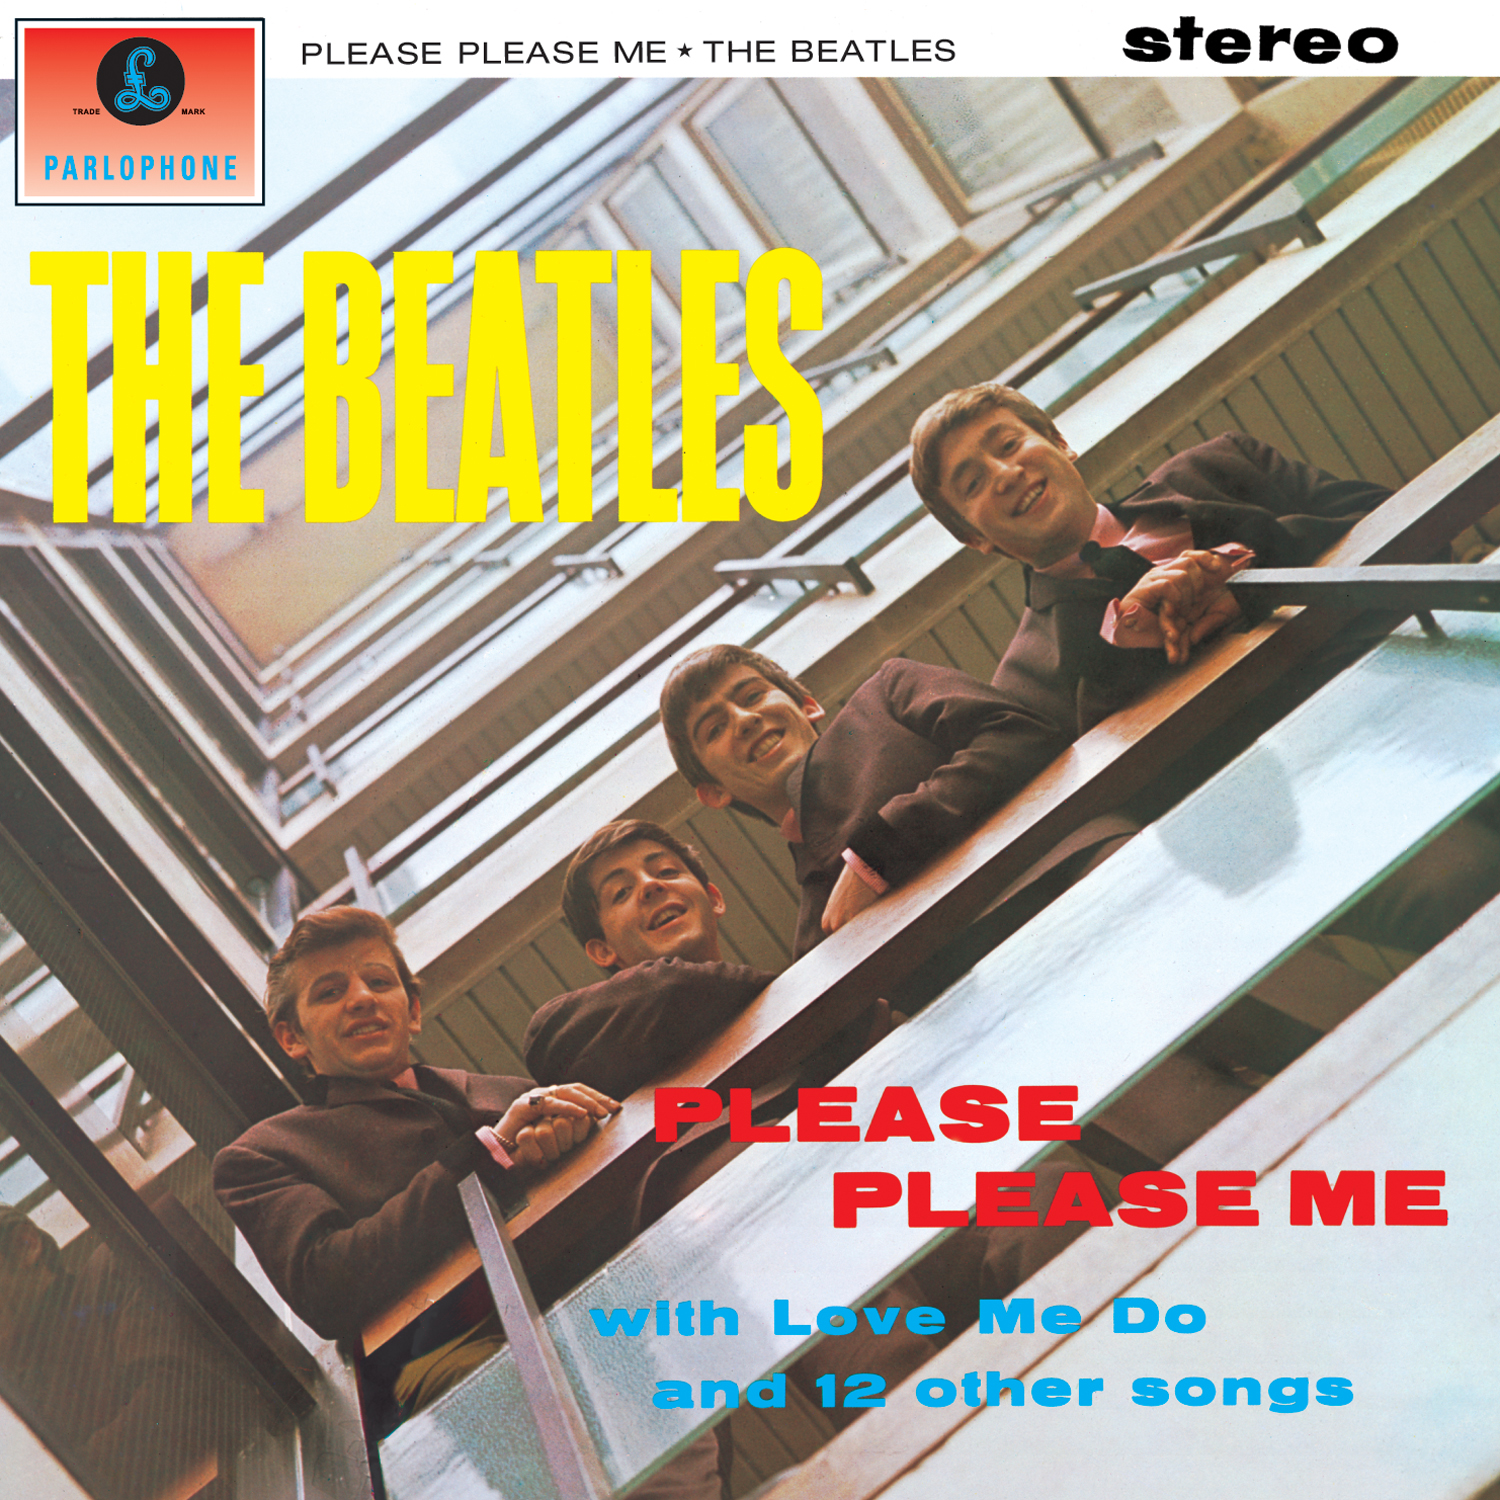 Please Please Me | Album Covers Wiki | Fandom powered by Wikia